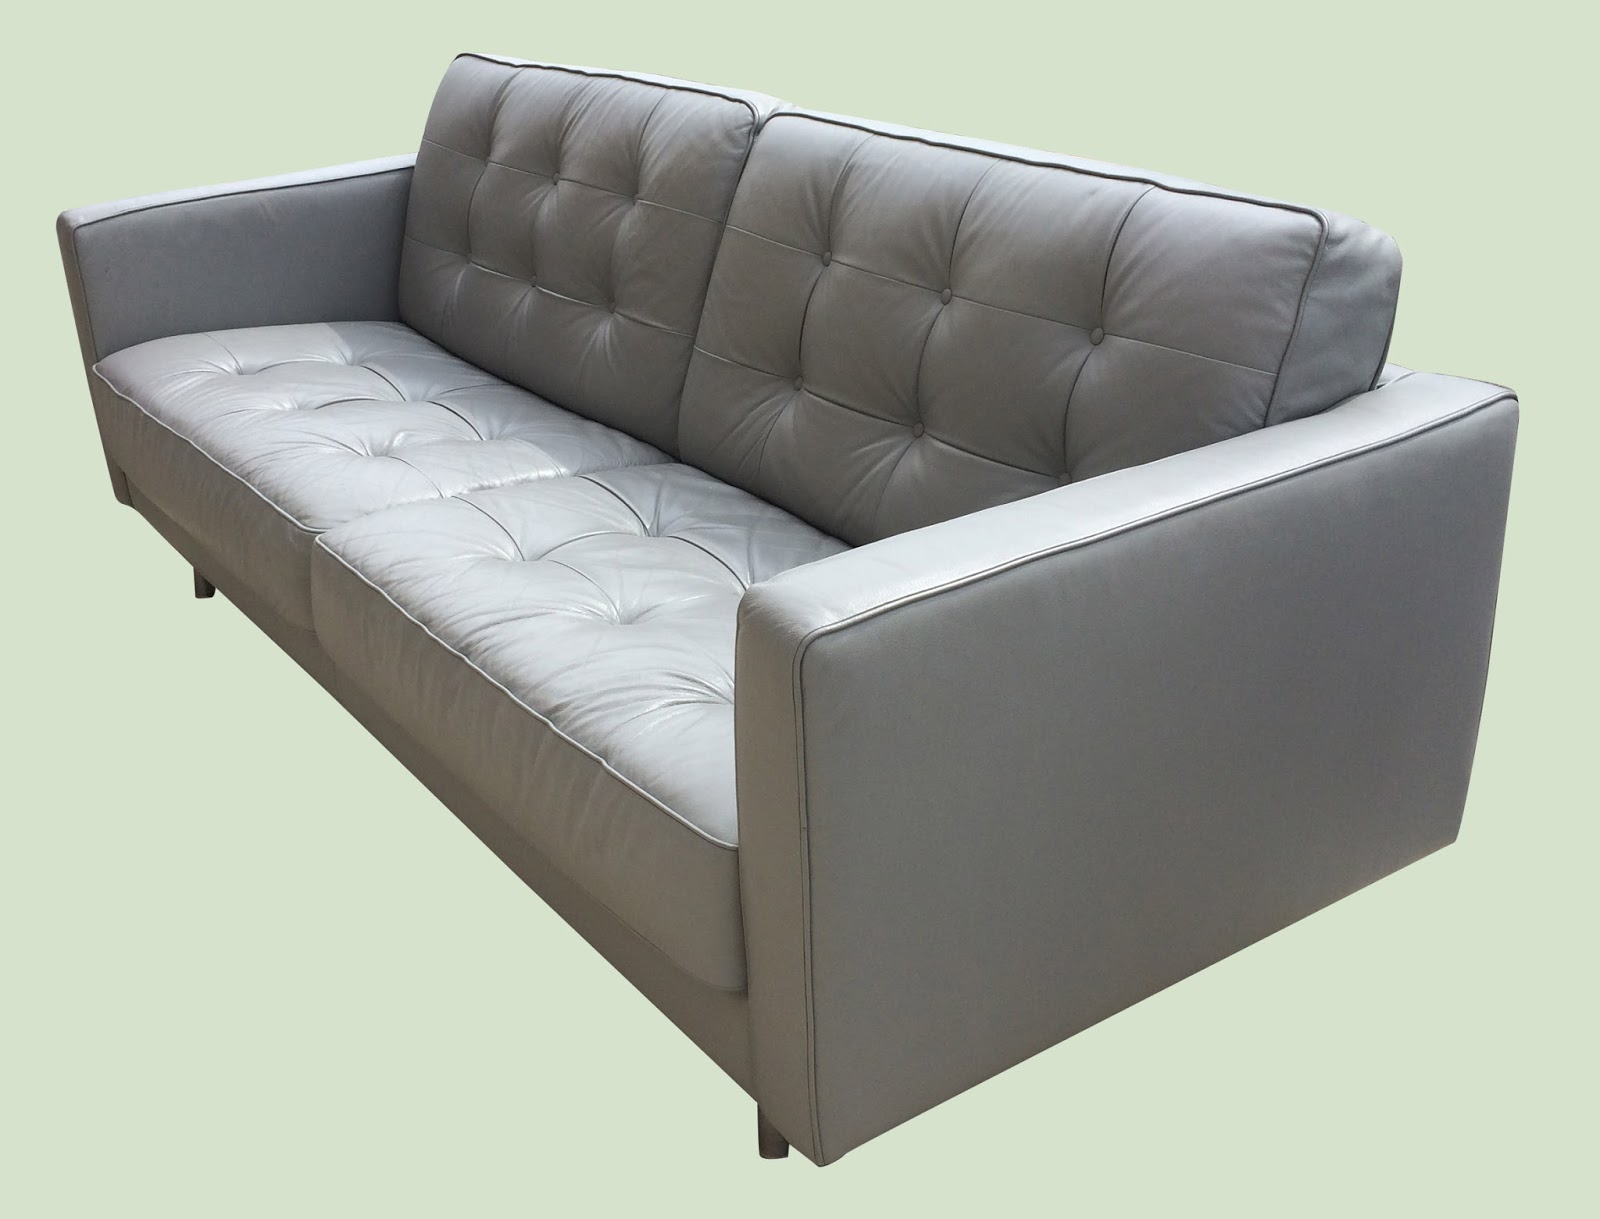 Uhuru furniture collectibles tufted light gray leather for Light gray leather sofa